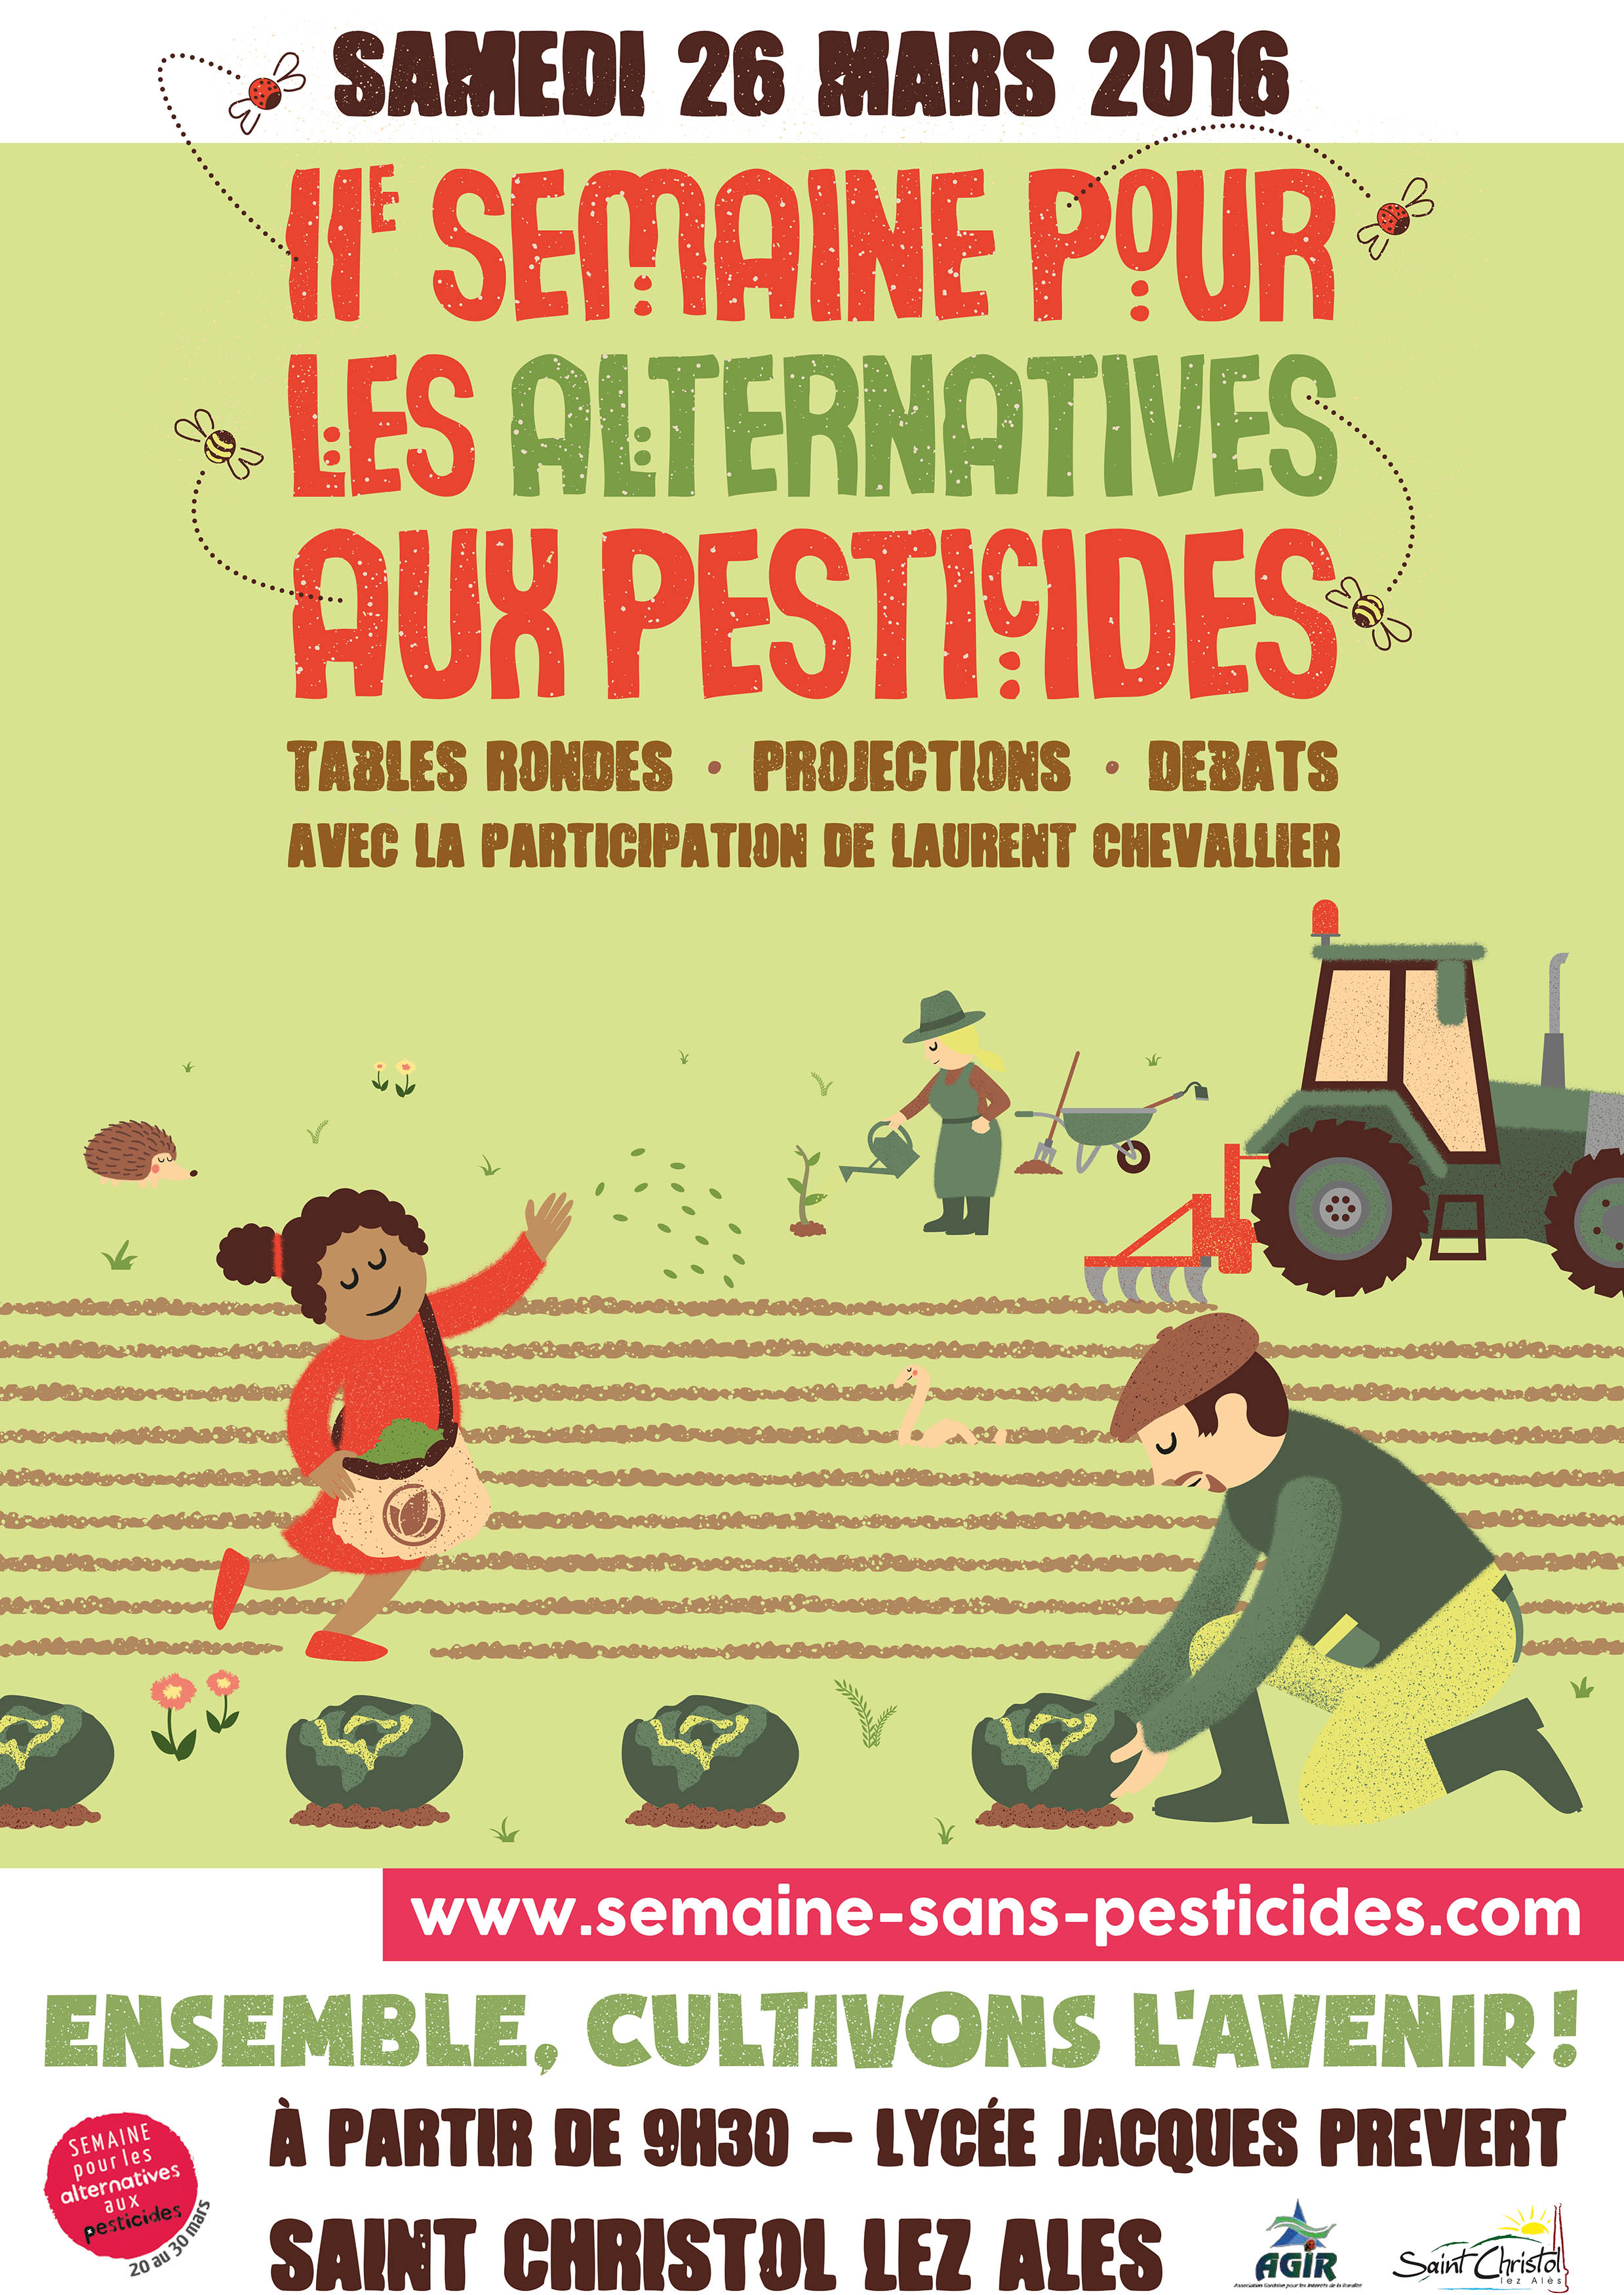 Photo of SAINT-CHRISTOL-LEZ-ALÈS Semaine pour les alternatives aux pesticides, ce samedi !